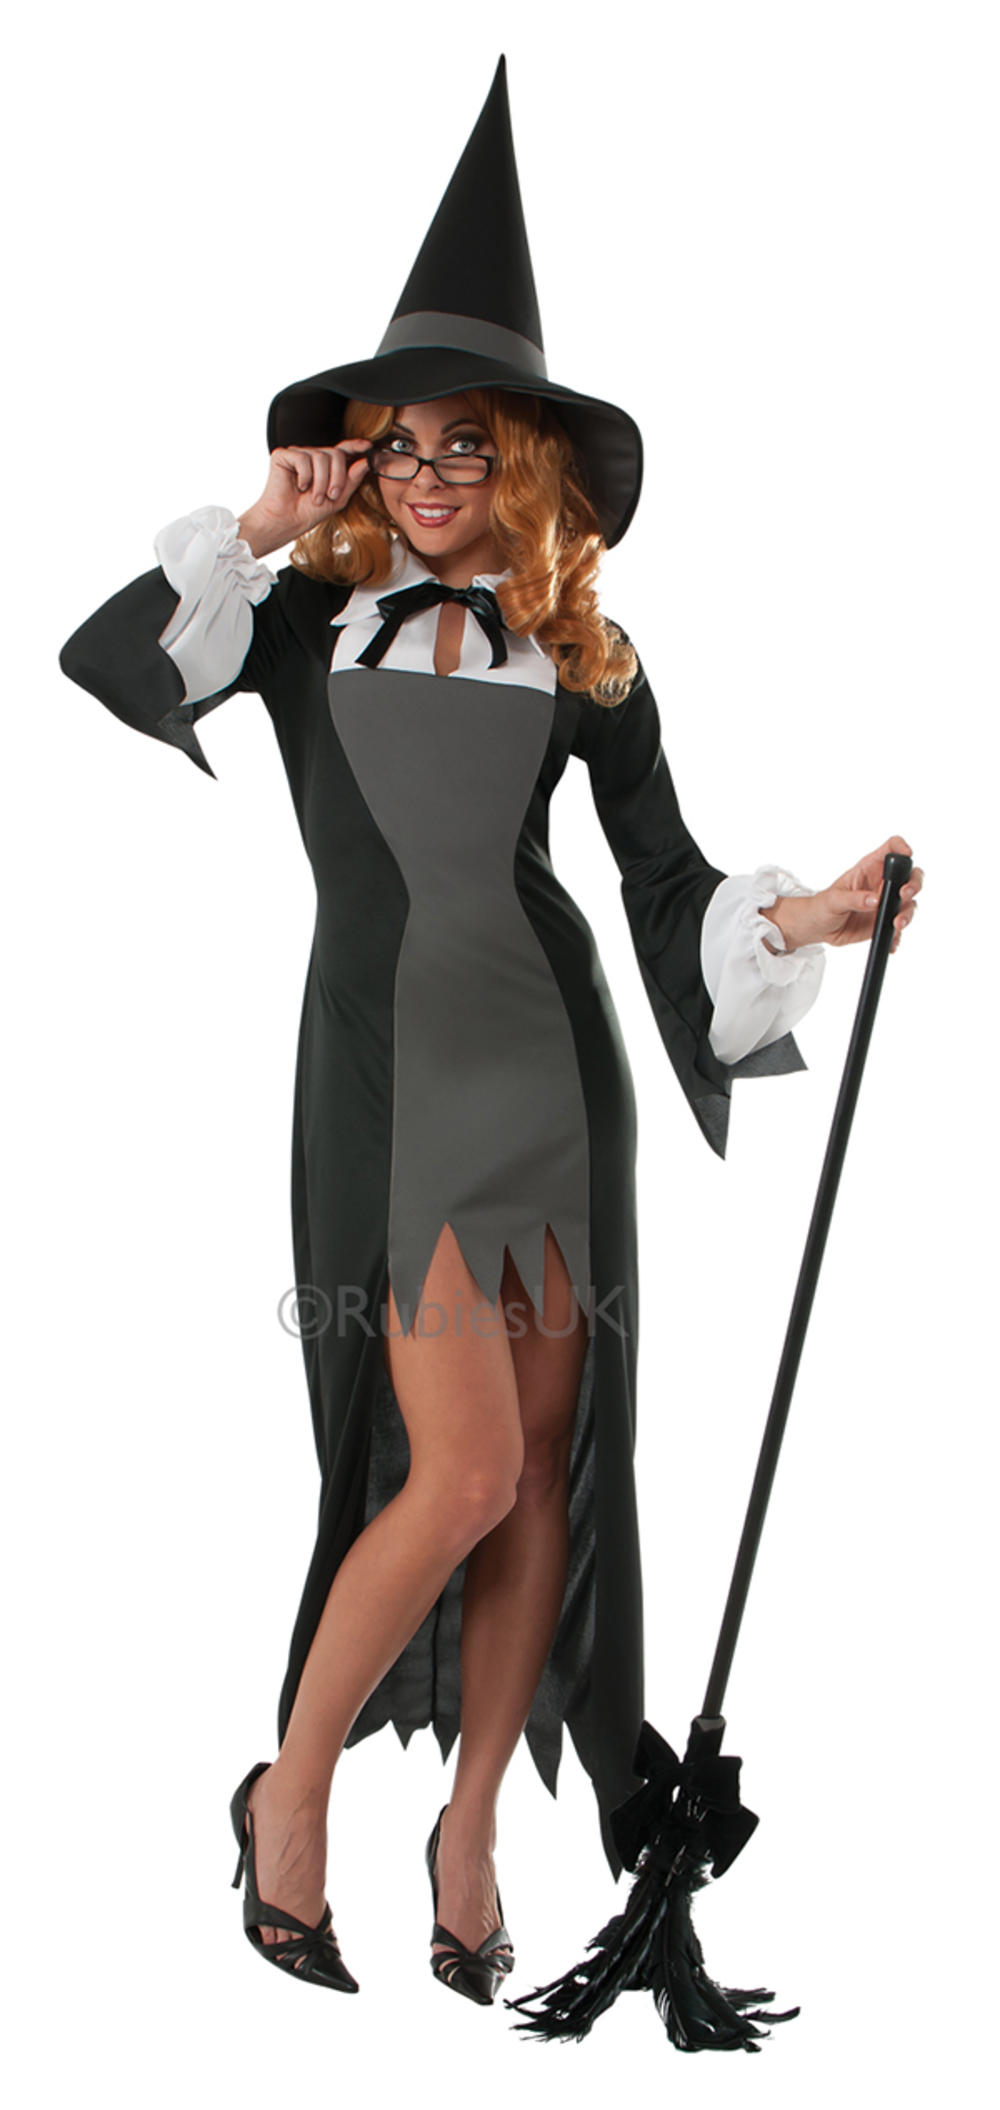 Puritan Witch Teacher Ladies Fancy Dress Halloween Adults Book Costume Outfit